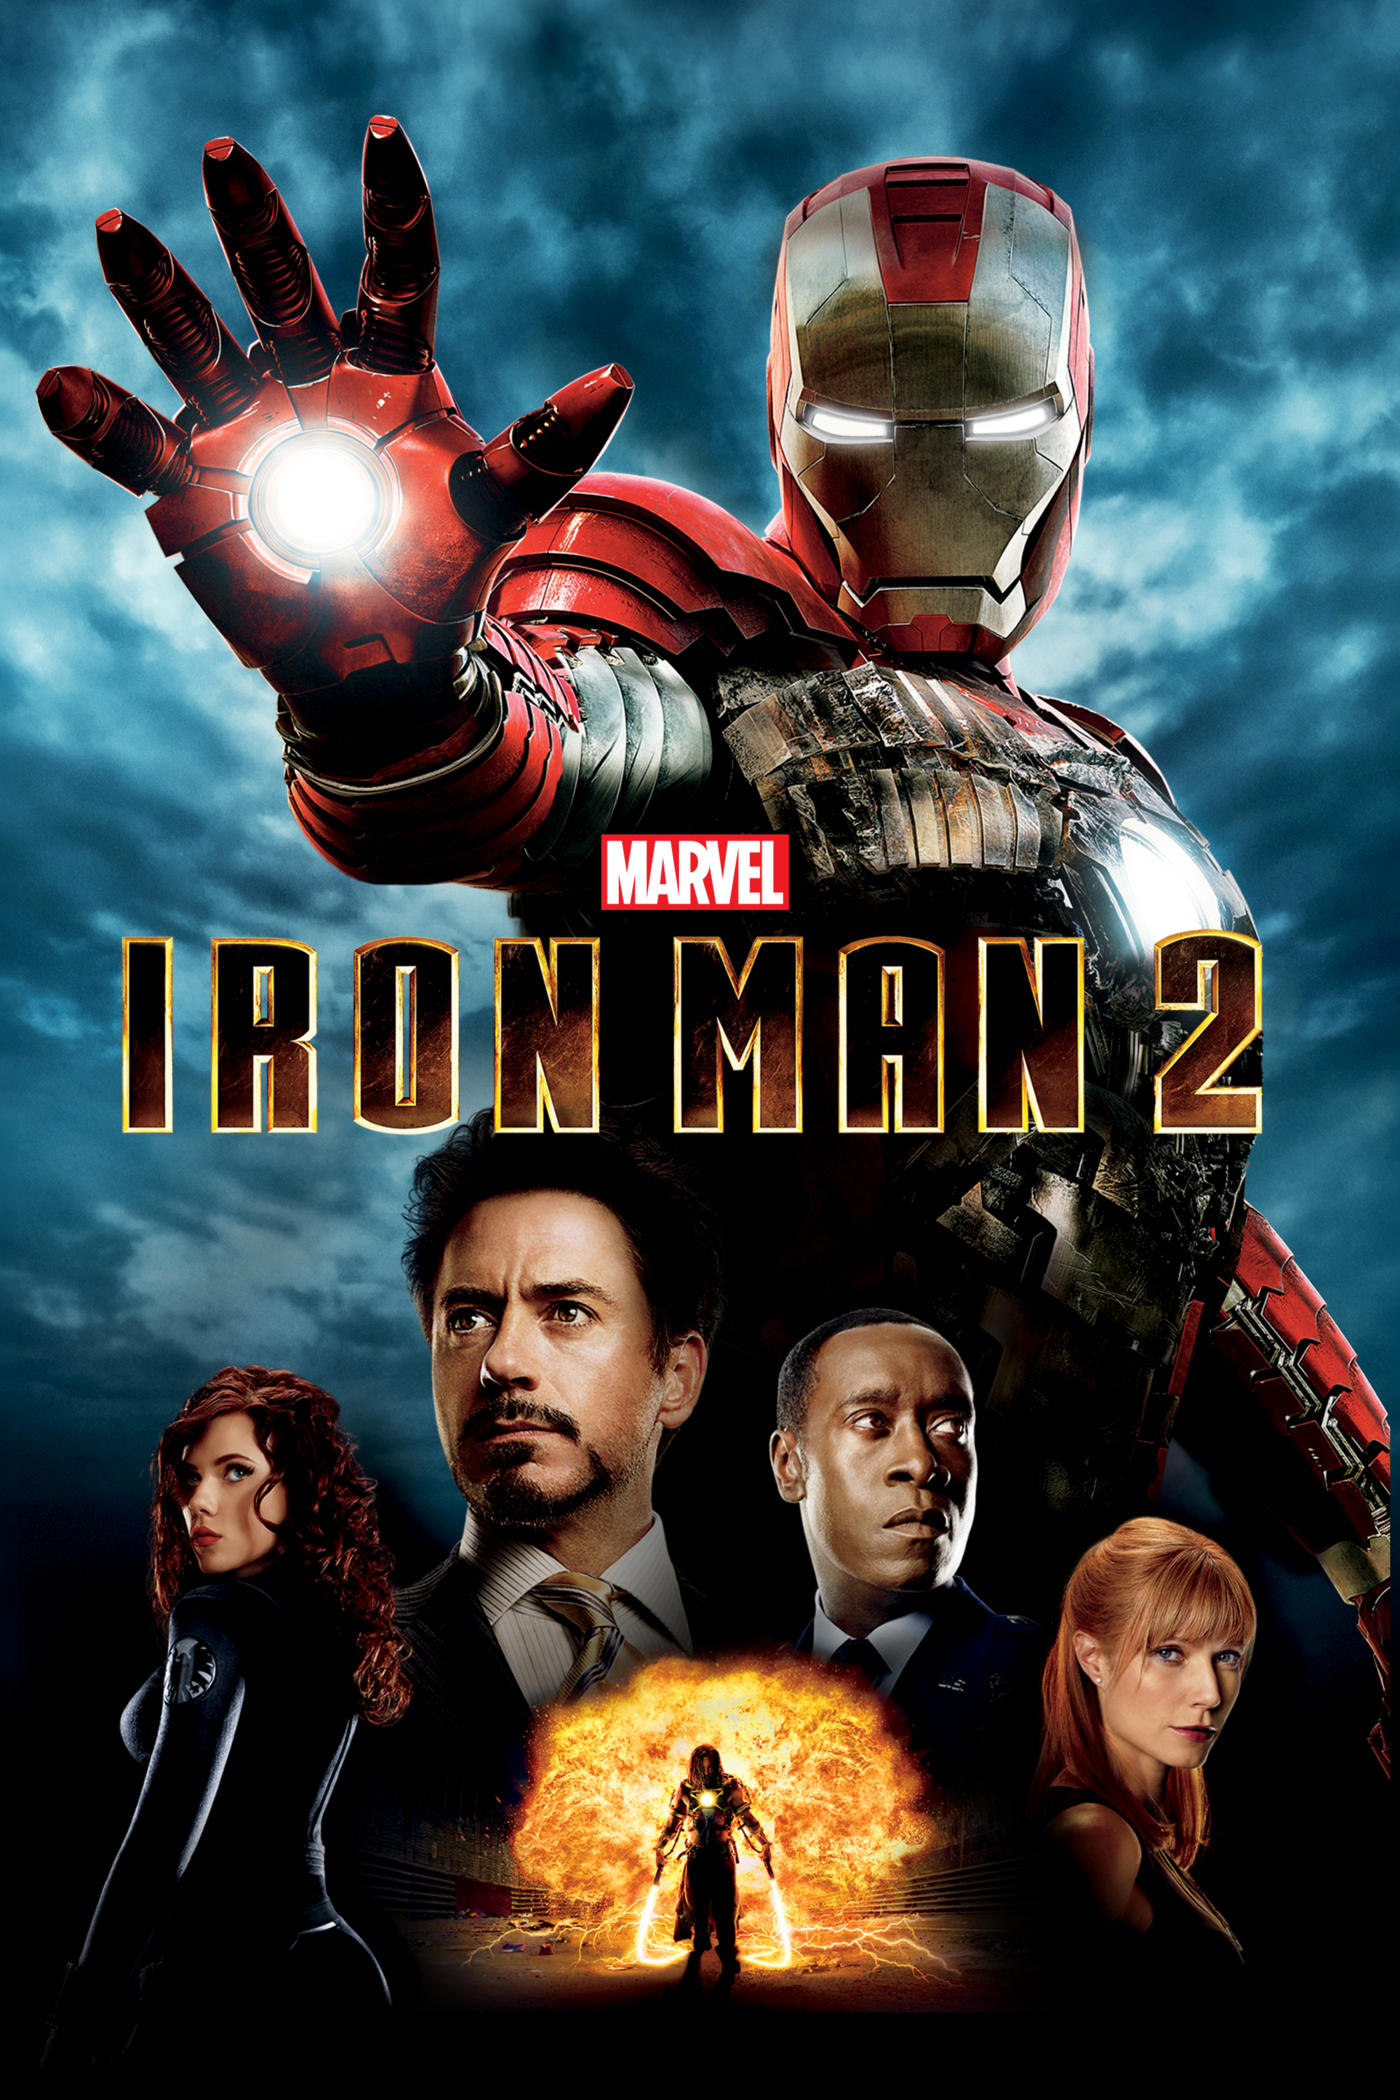 Iron man 2 transcripts wiki fandom powered by wikia - Iron man 1 images ...